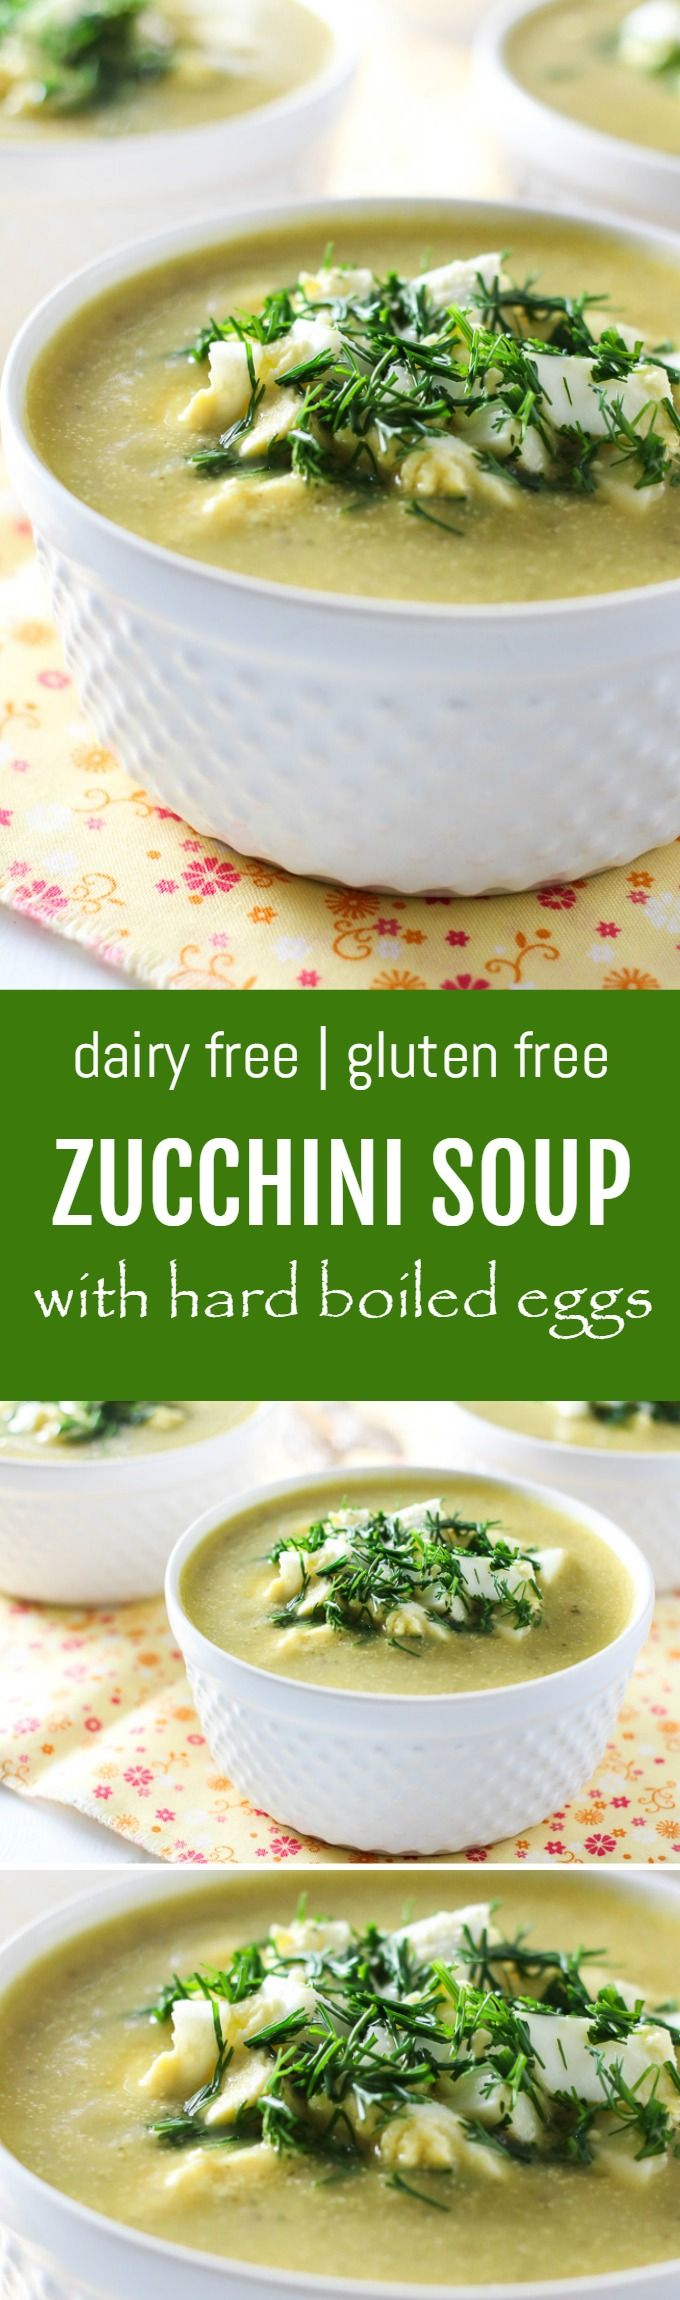 This dairy-free zucchini soup is served with dill and hard-boiled eggs. This soup is very easy to make, healthy and filling.